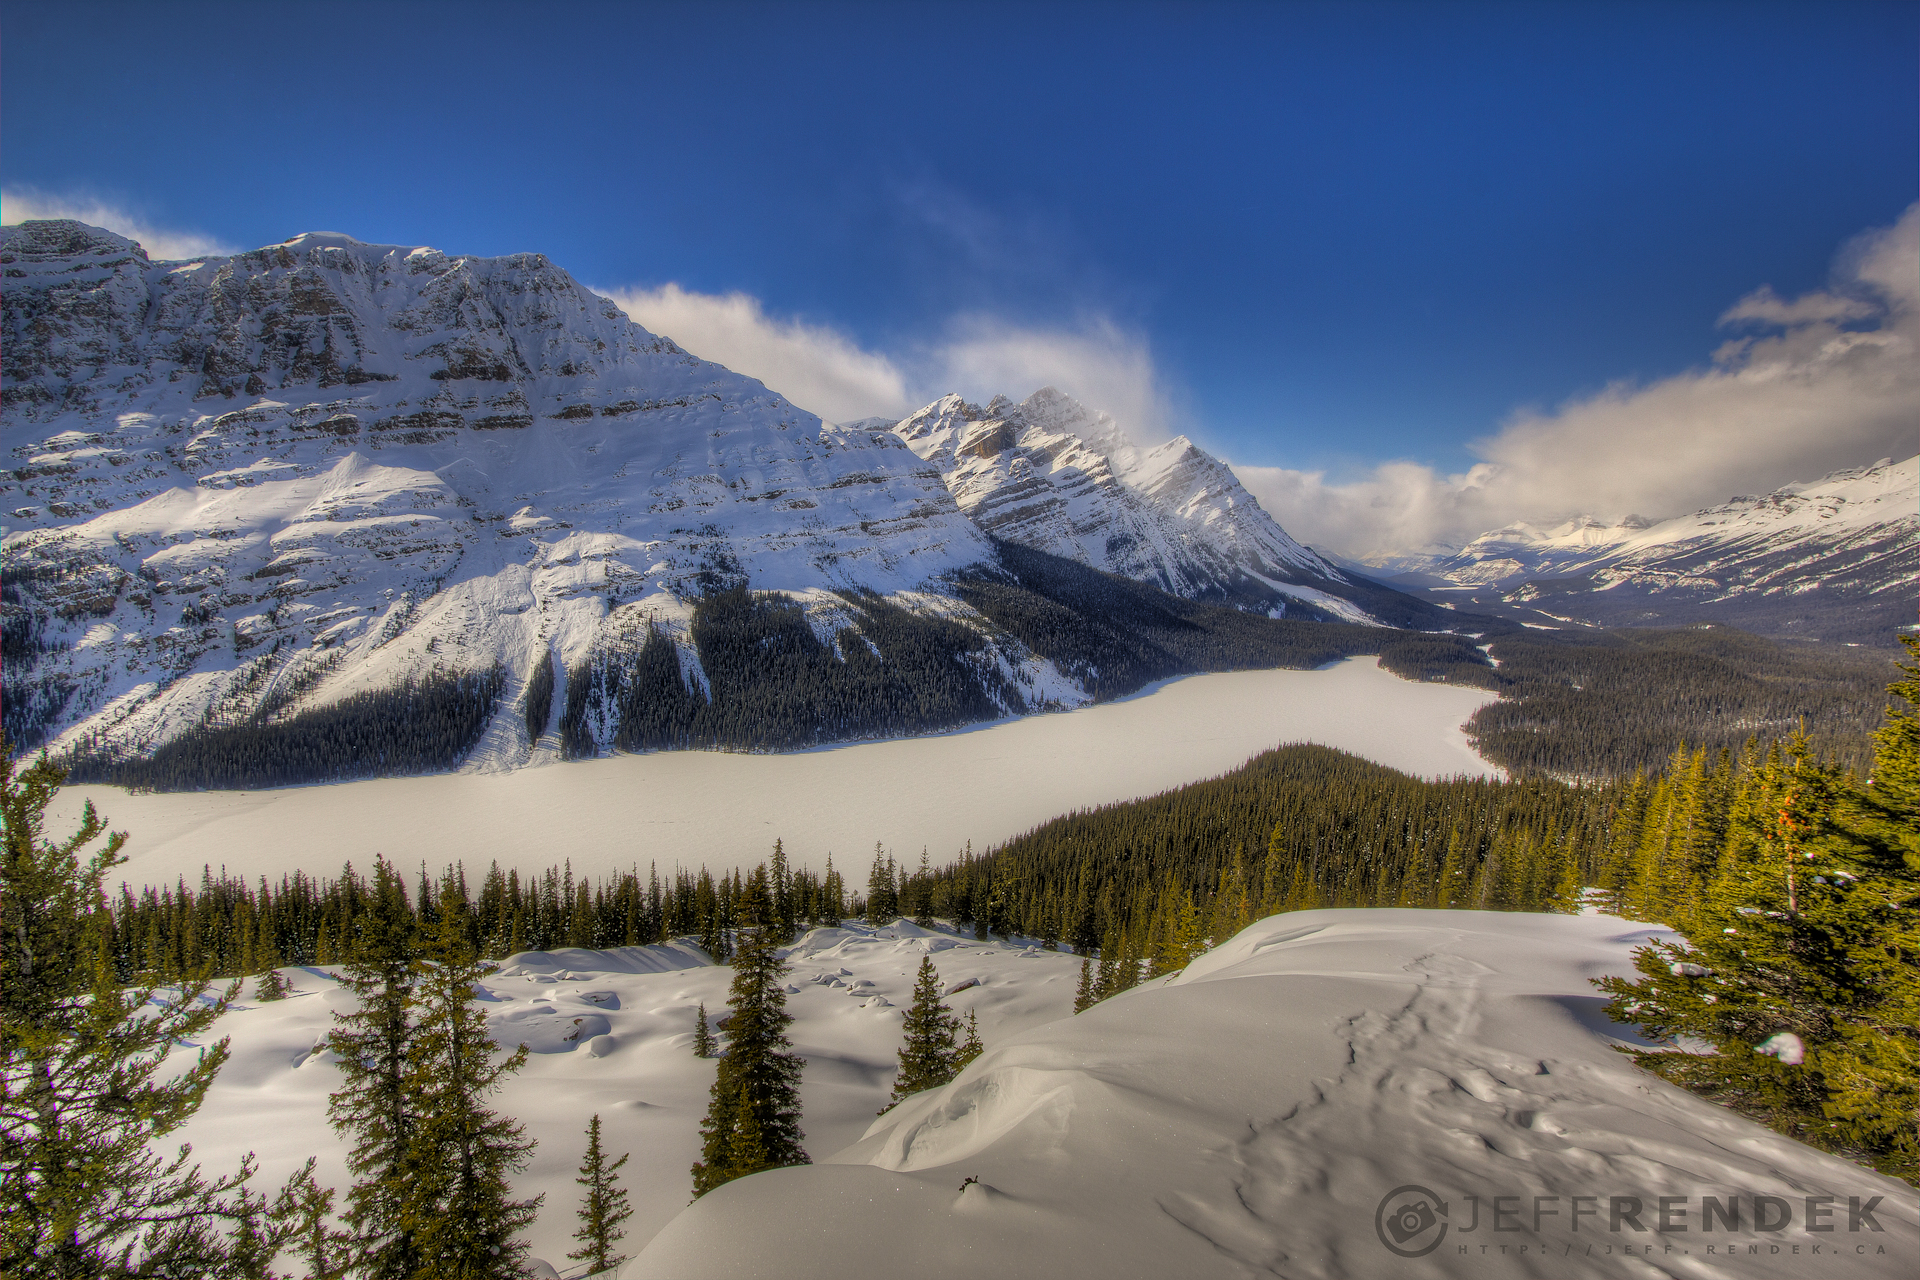 Town And Country Toyota >> Snowshoeing to Peyto Lake Viewpoint - Bow Valley Summit